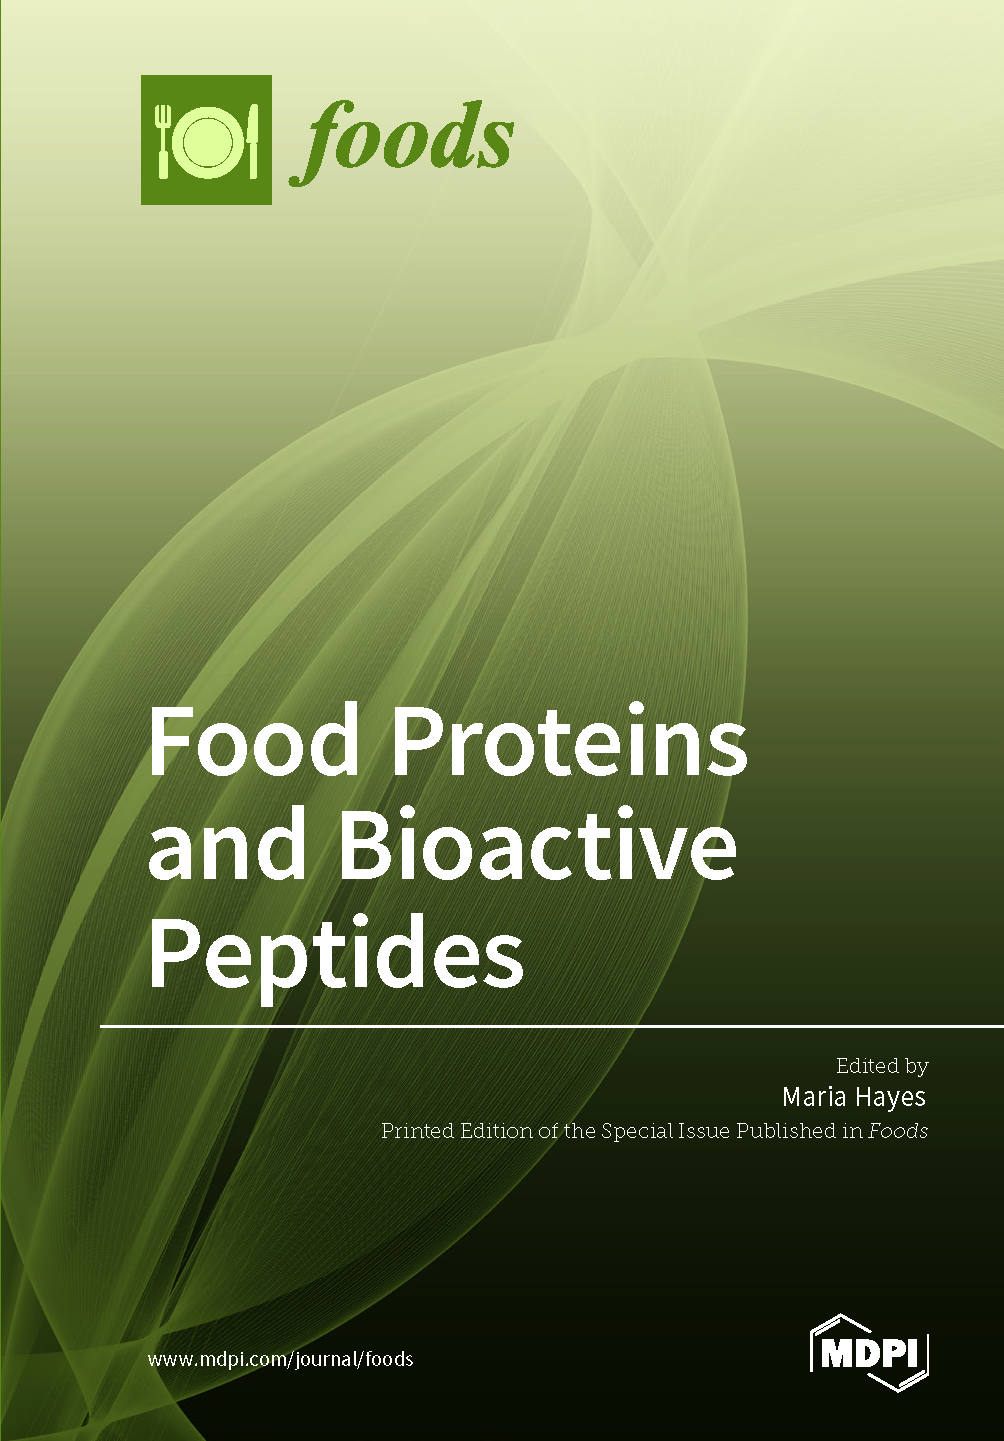 Food Proteins and Bioactive Peptides